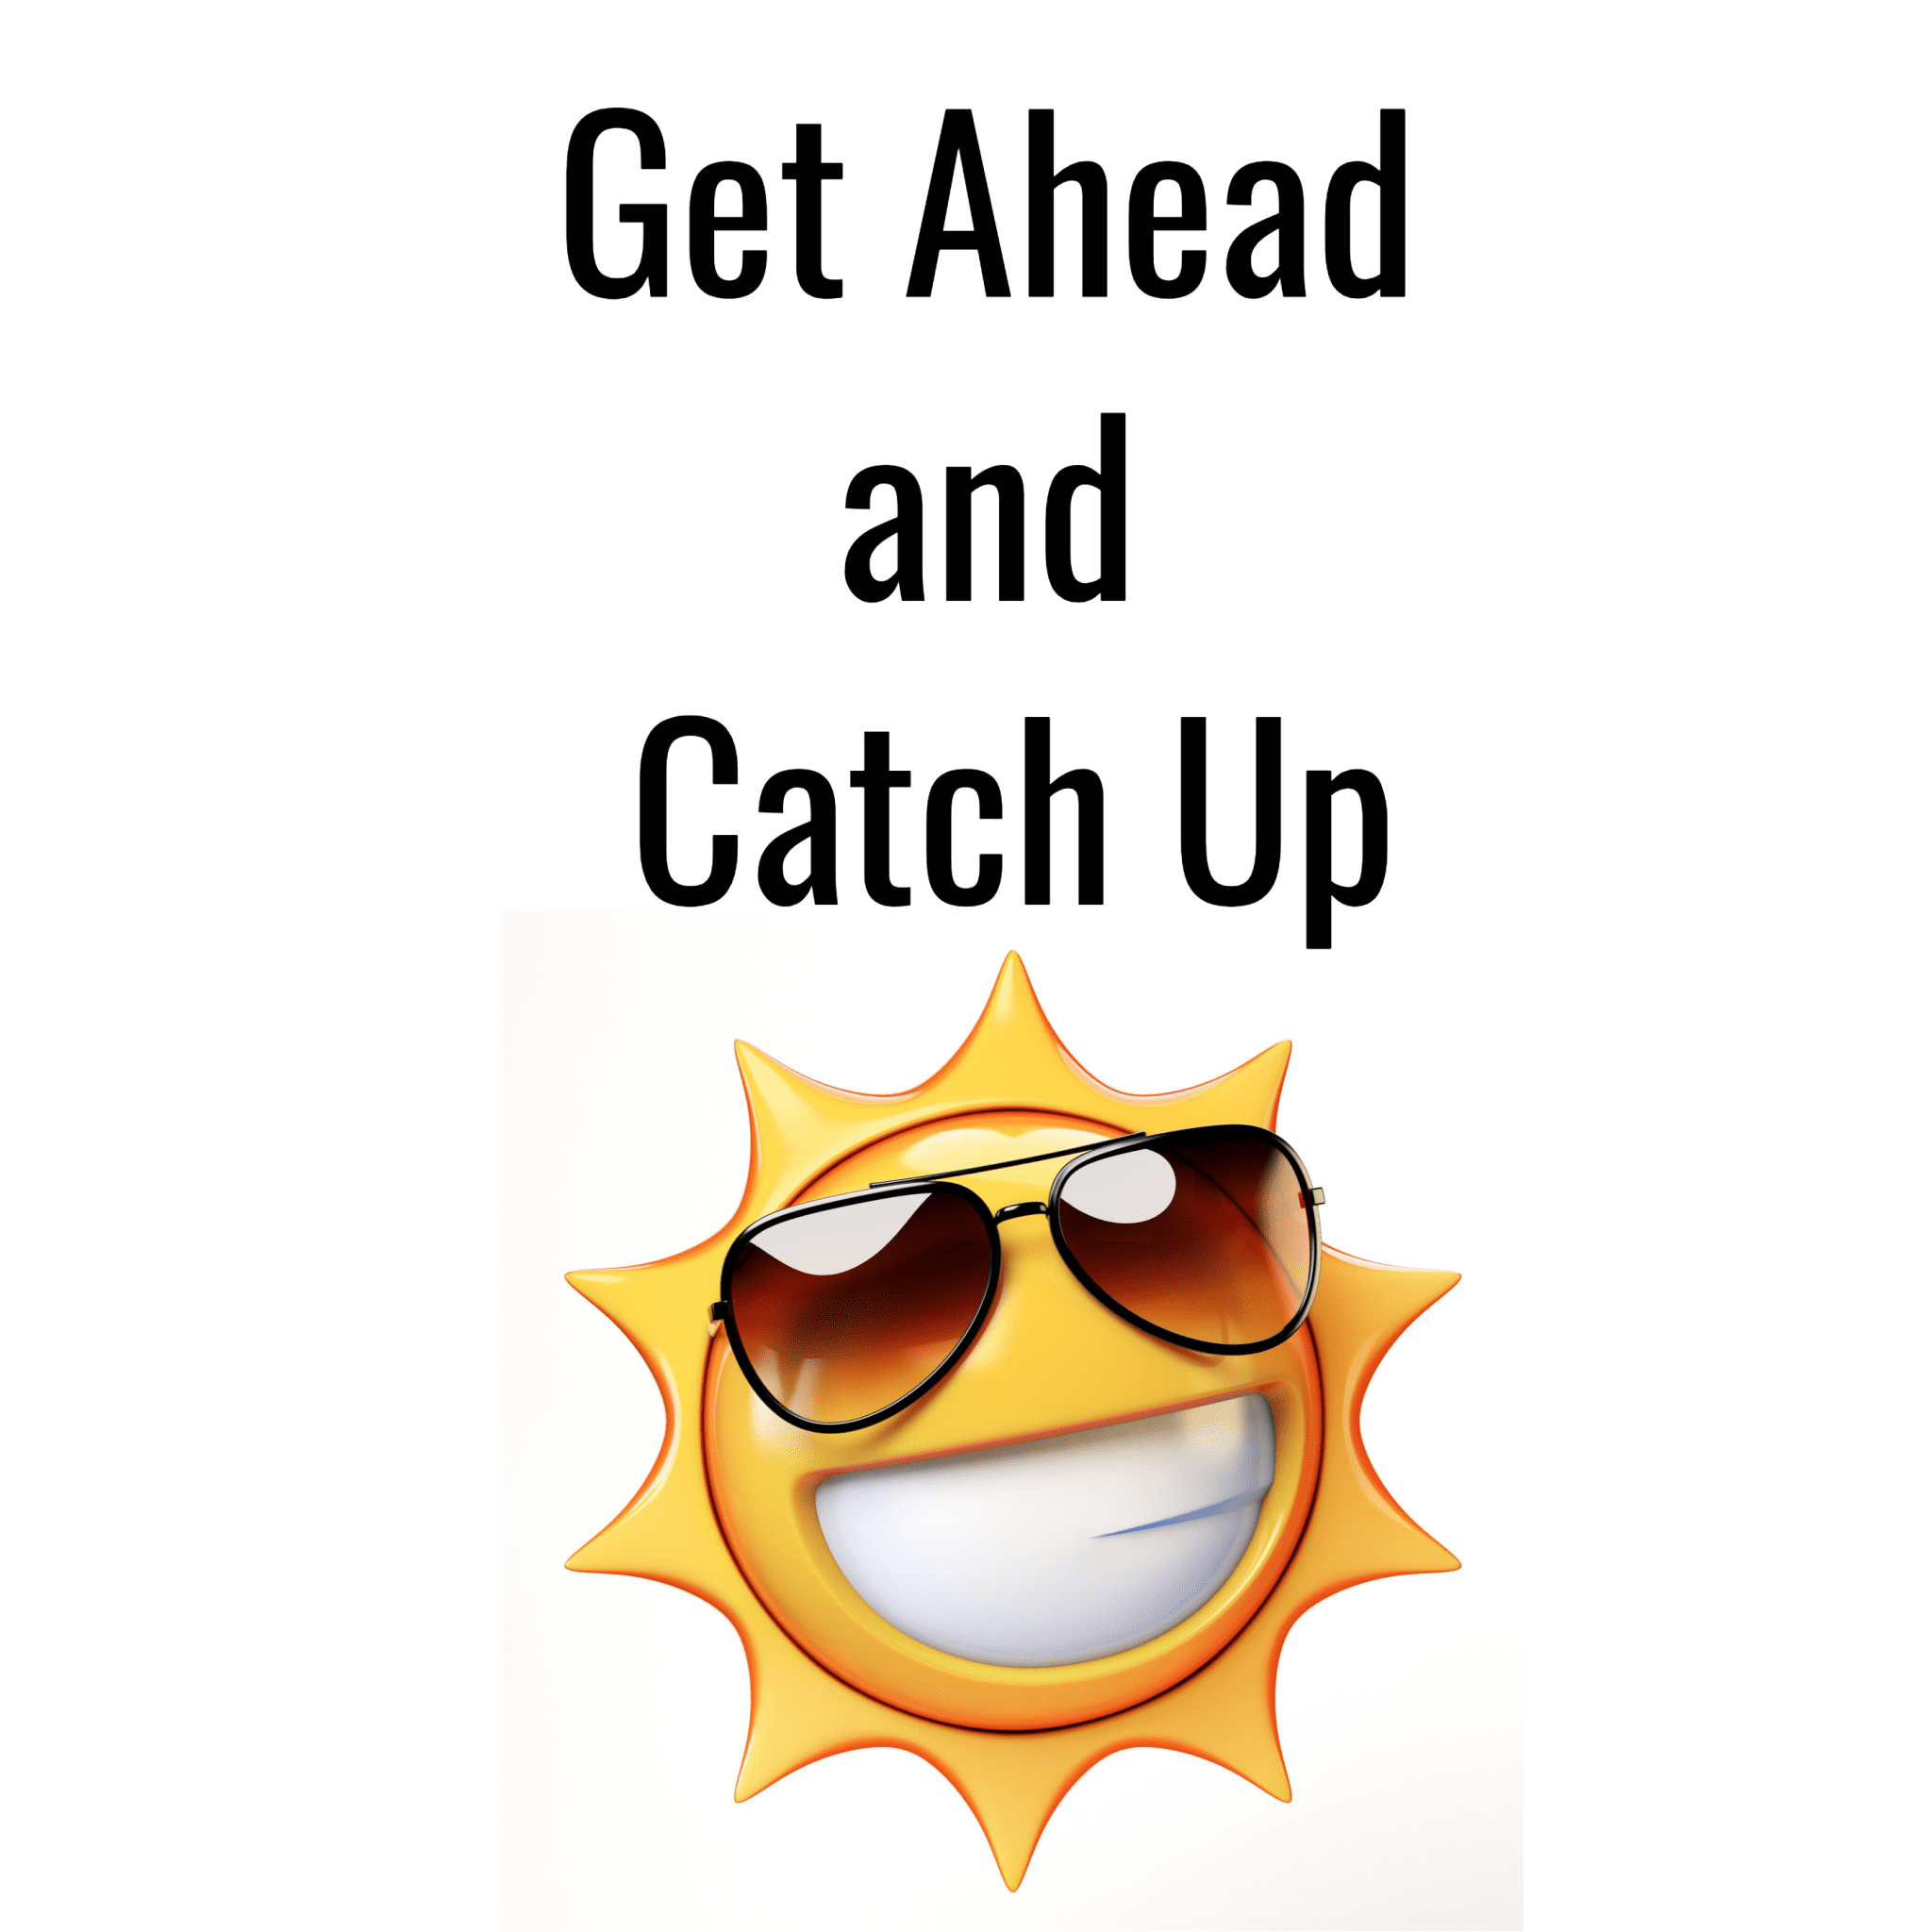 Get Ahead and Catch Up 